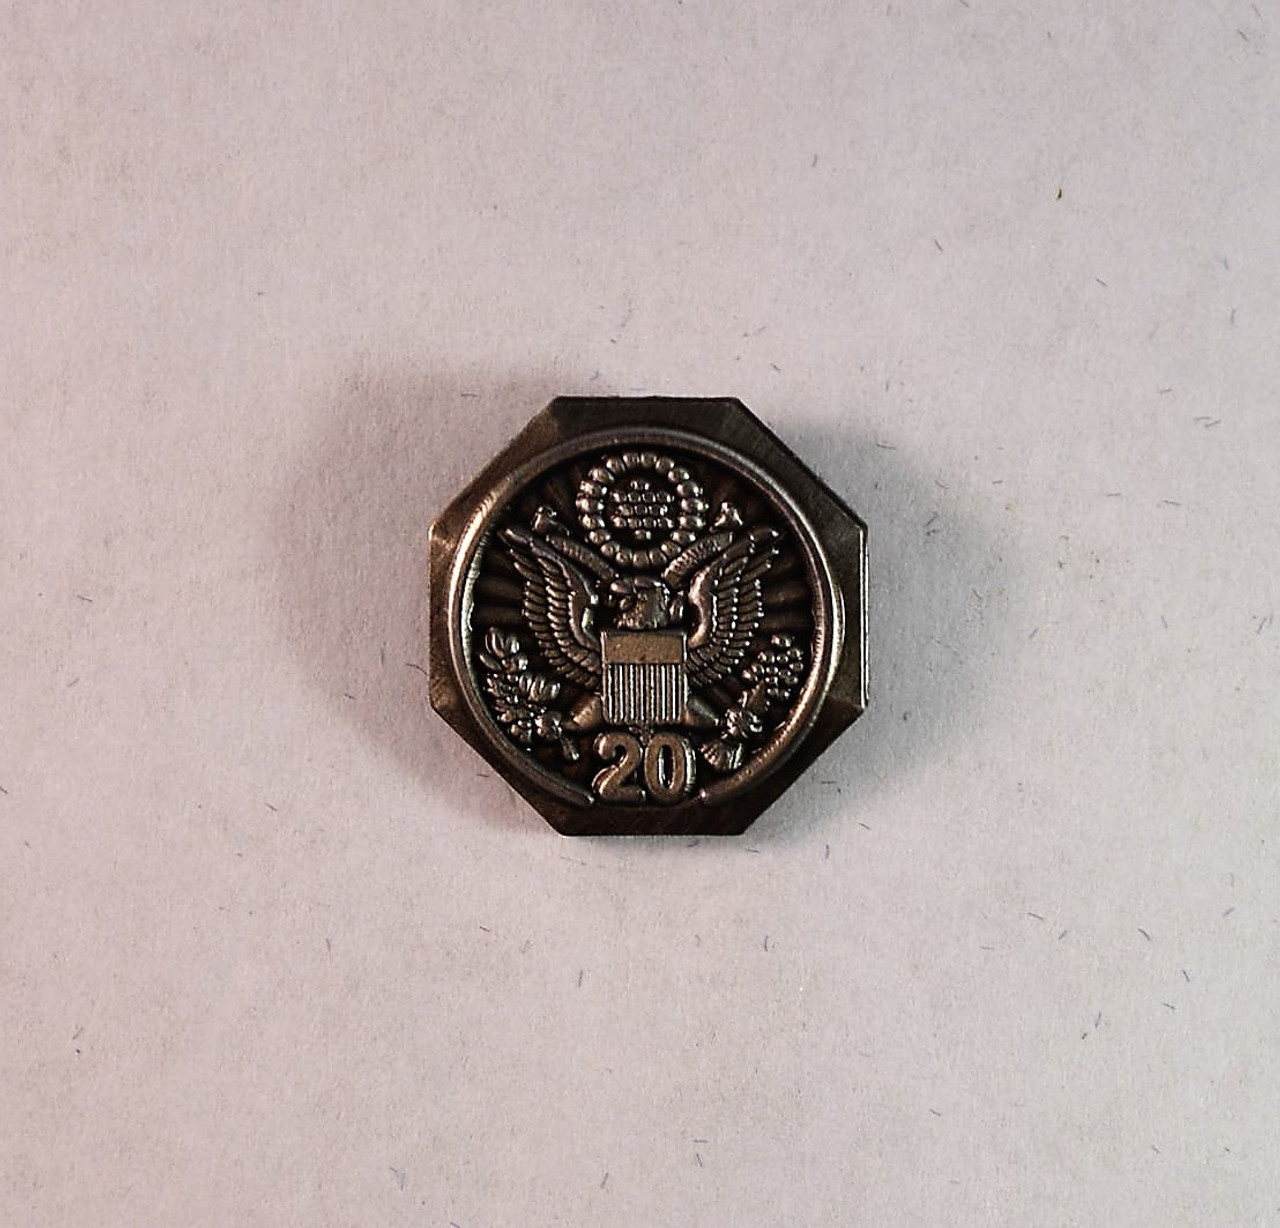 Forest Service Length of Service Pin with Eagle Crest (20 years)